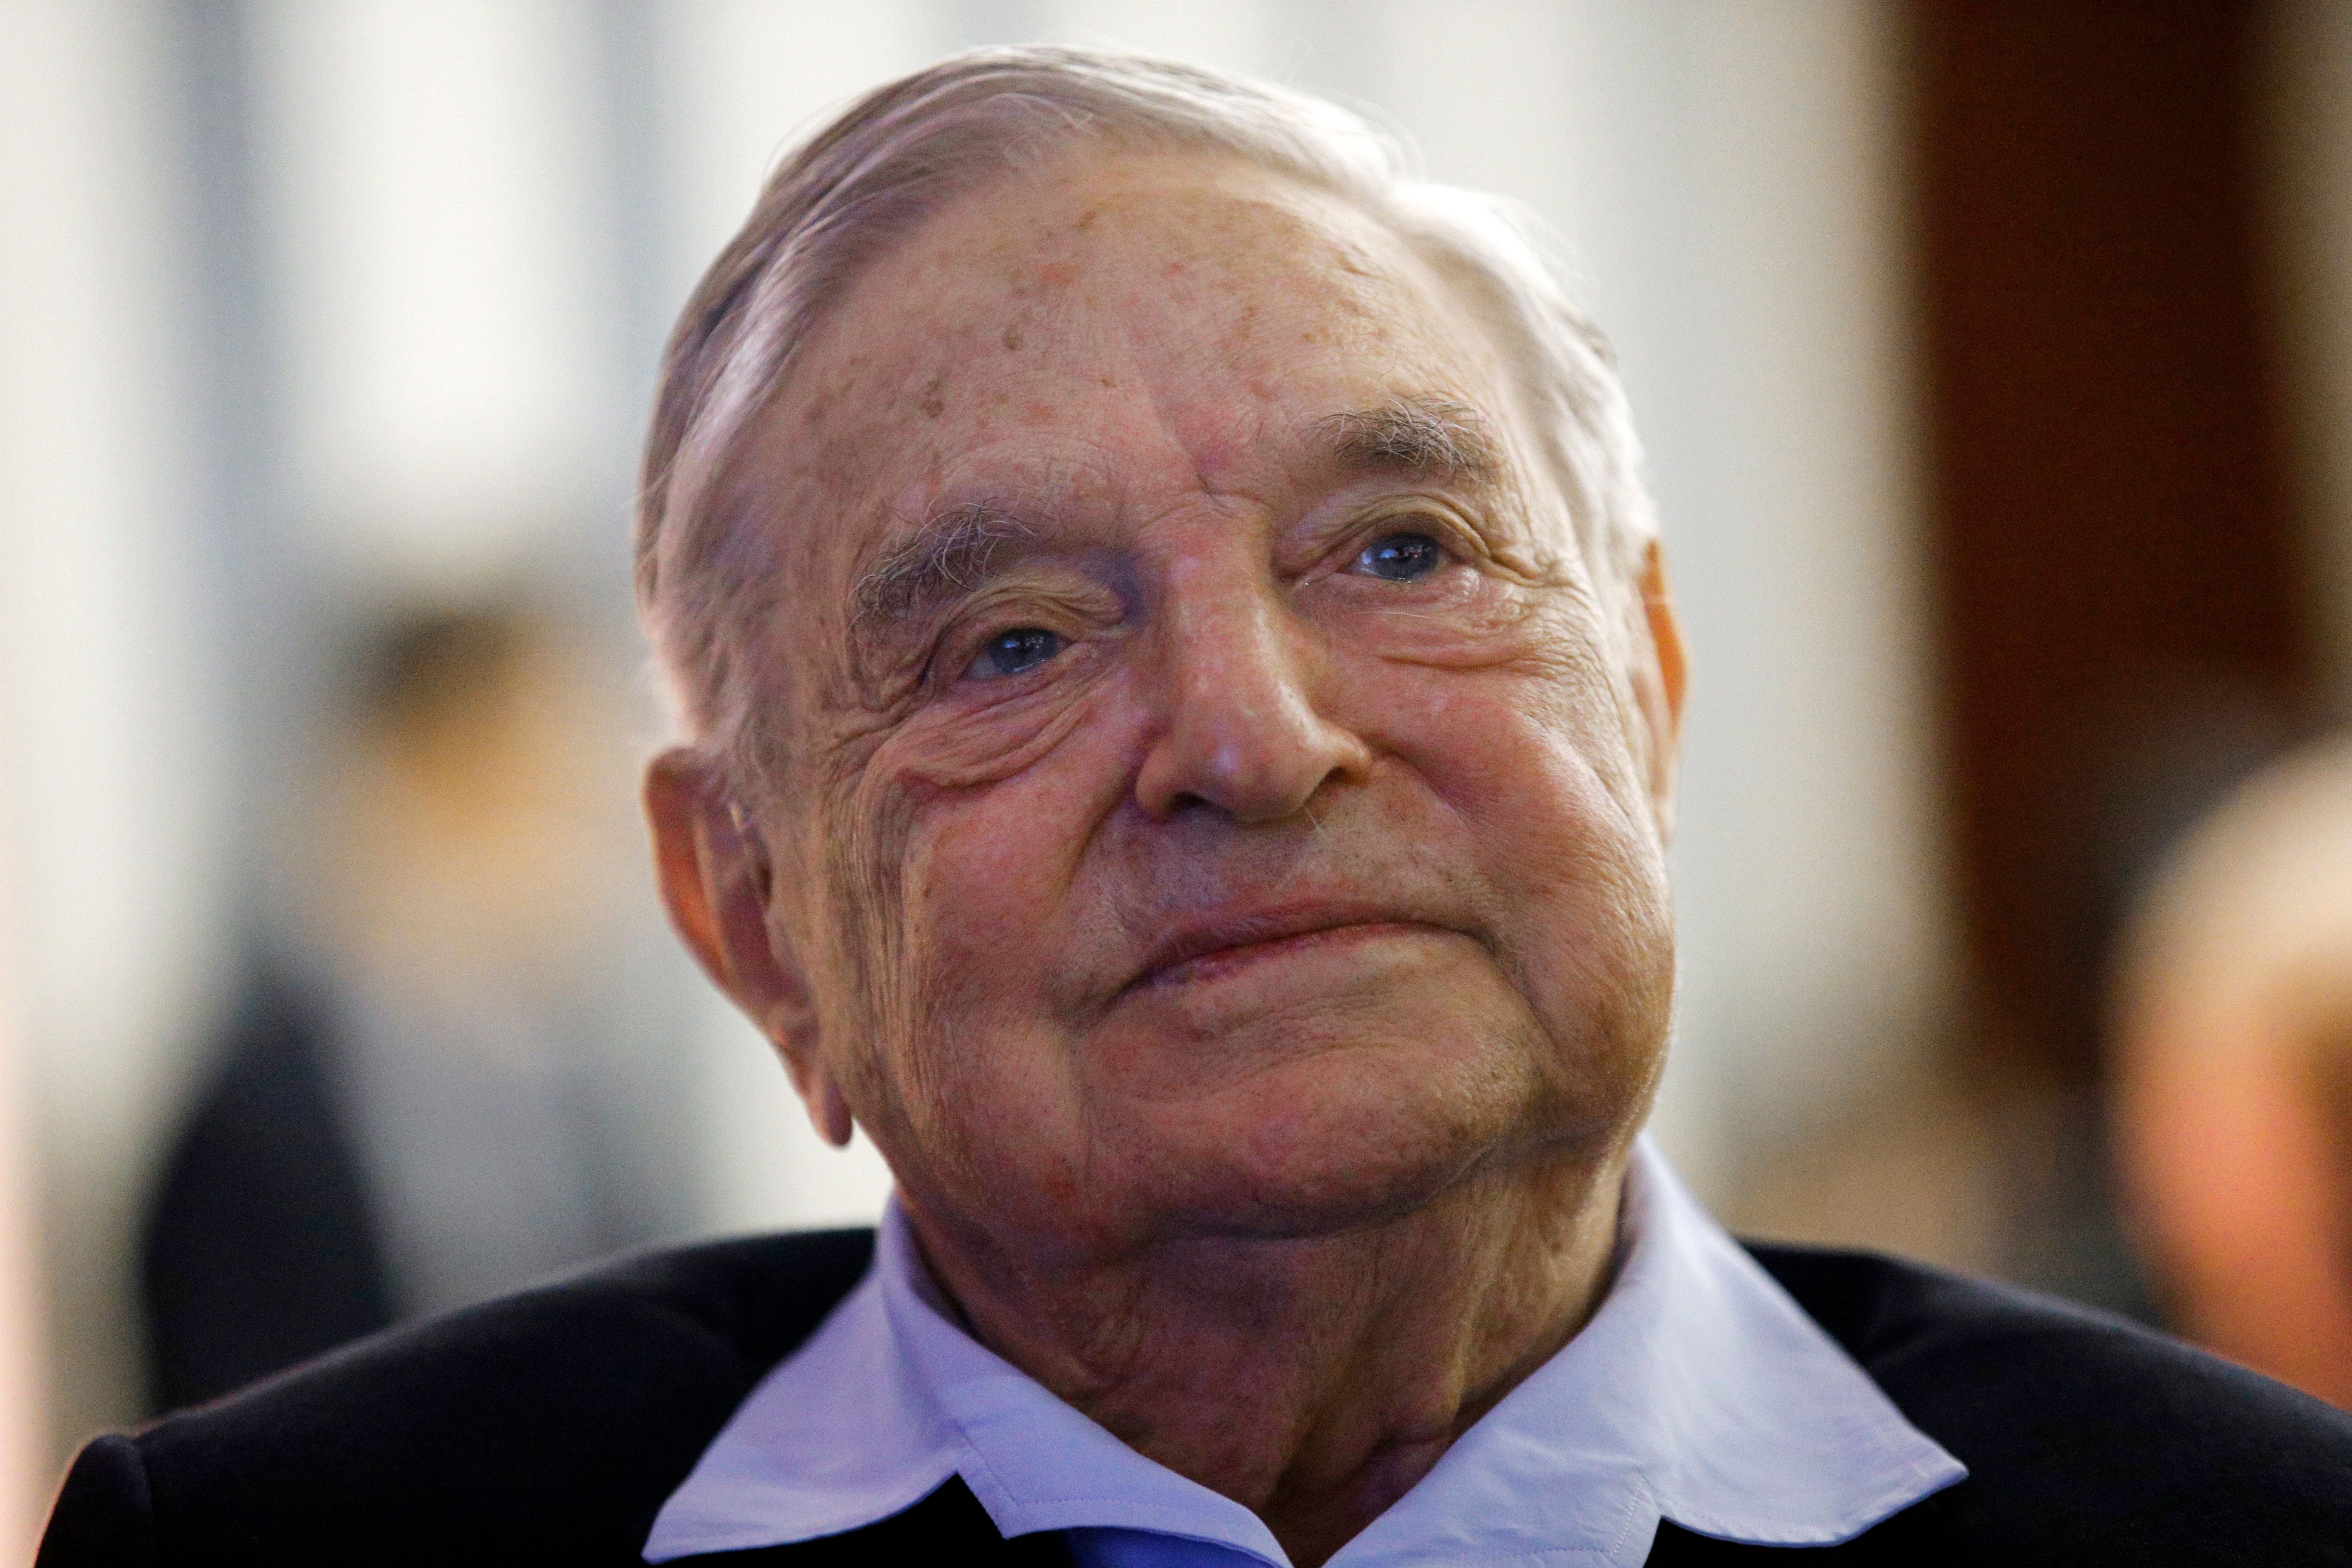 On Monday evening, law enforcement responded to a bomb in the mailbox of George Soros' home in...